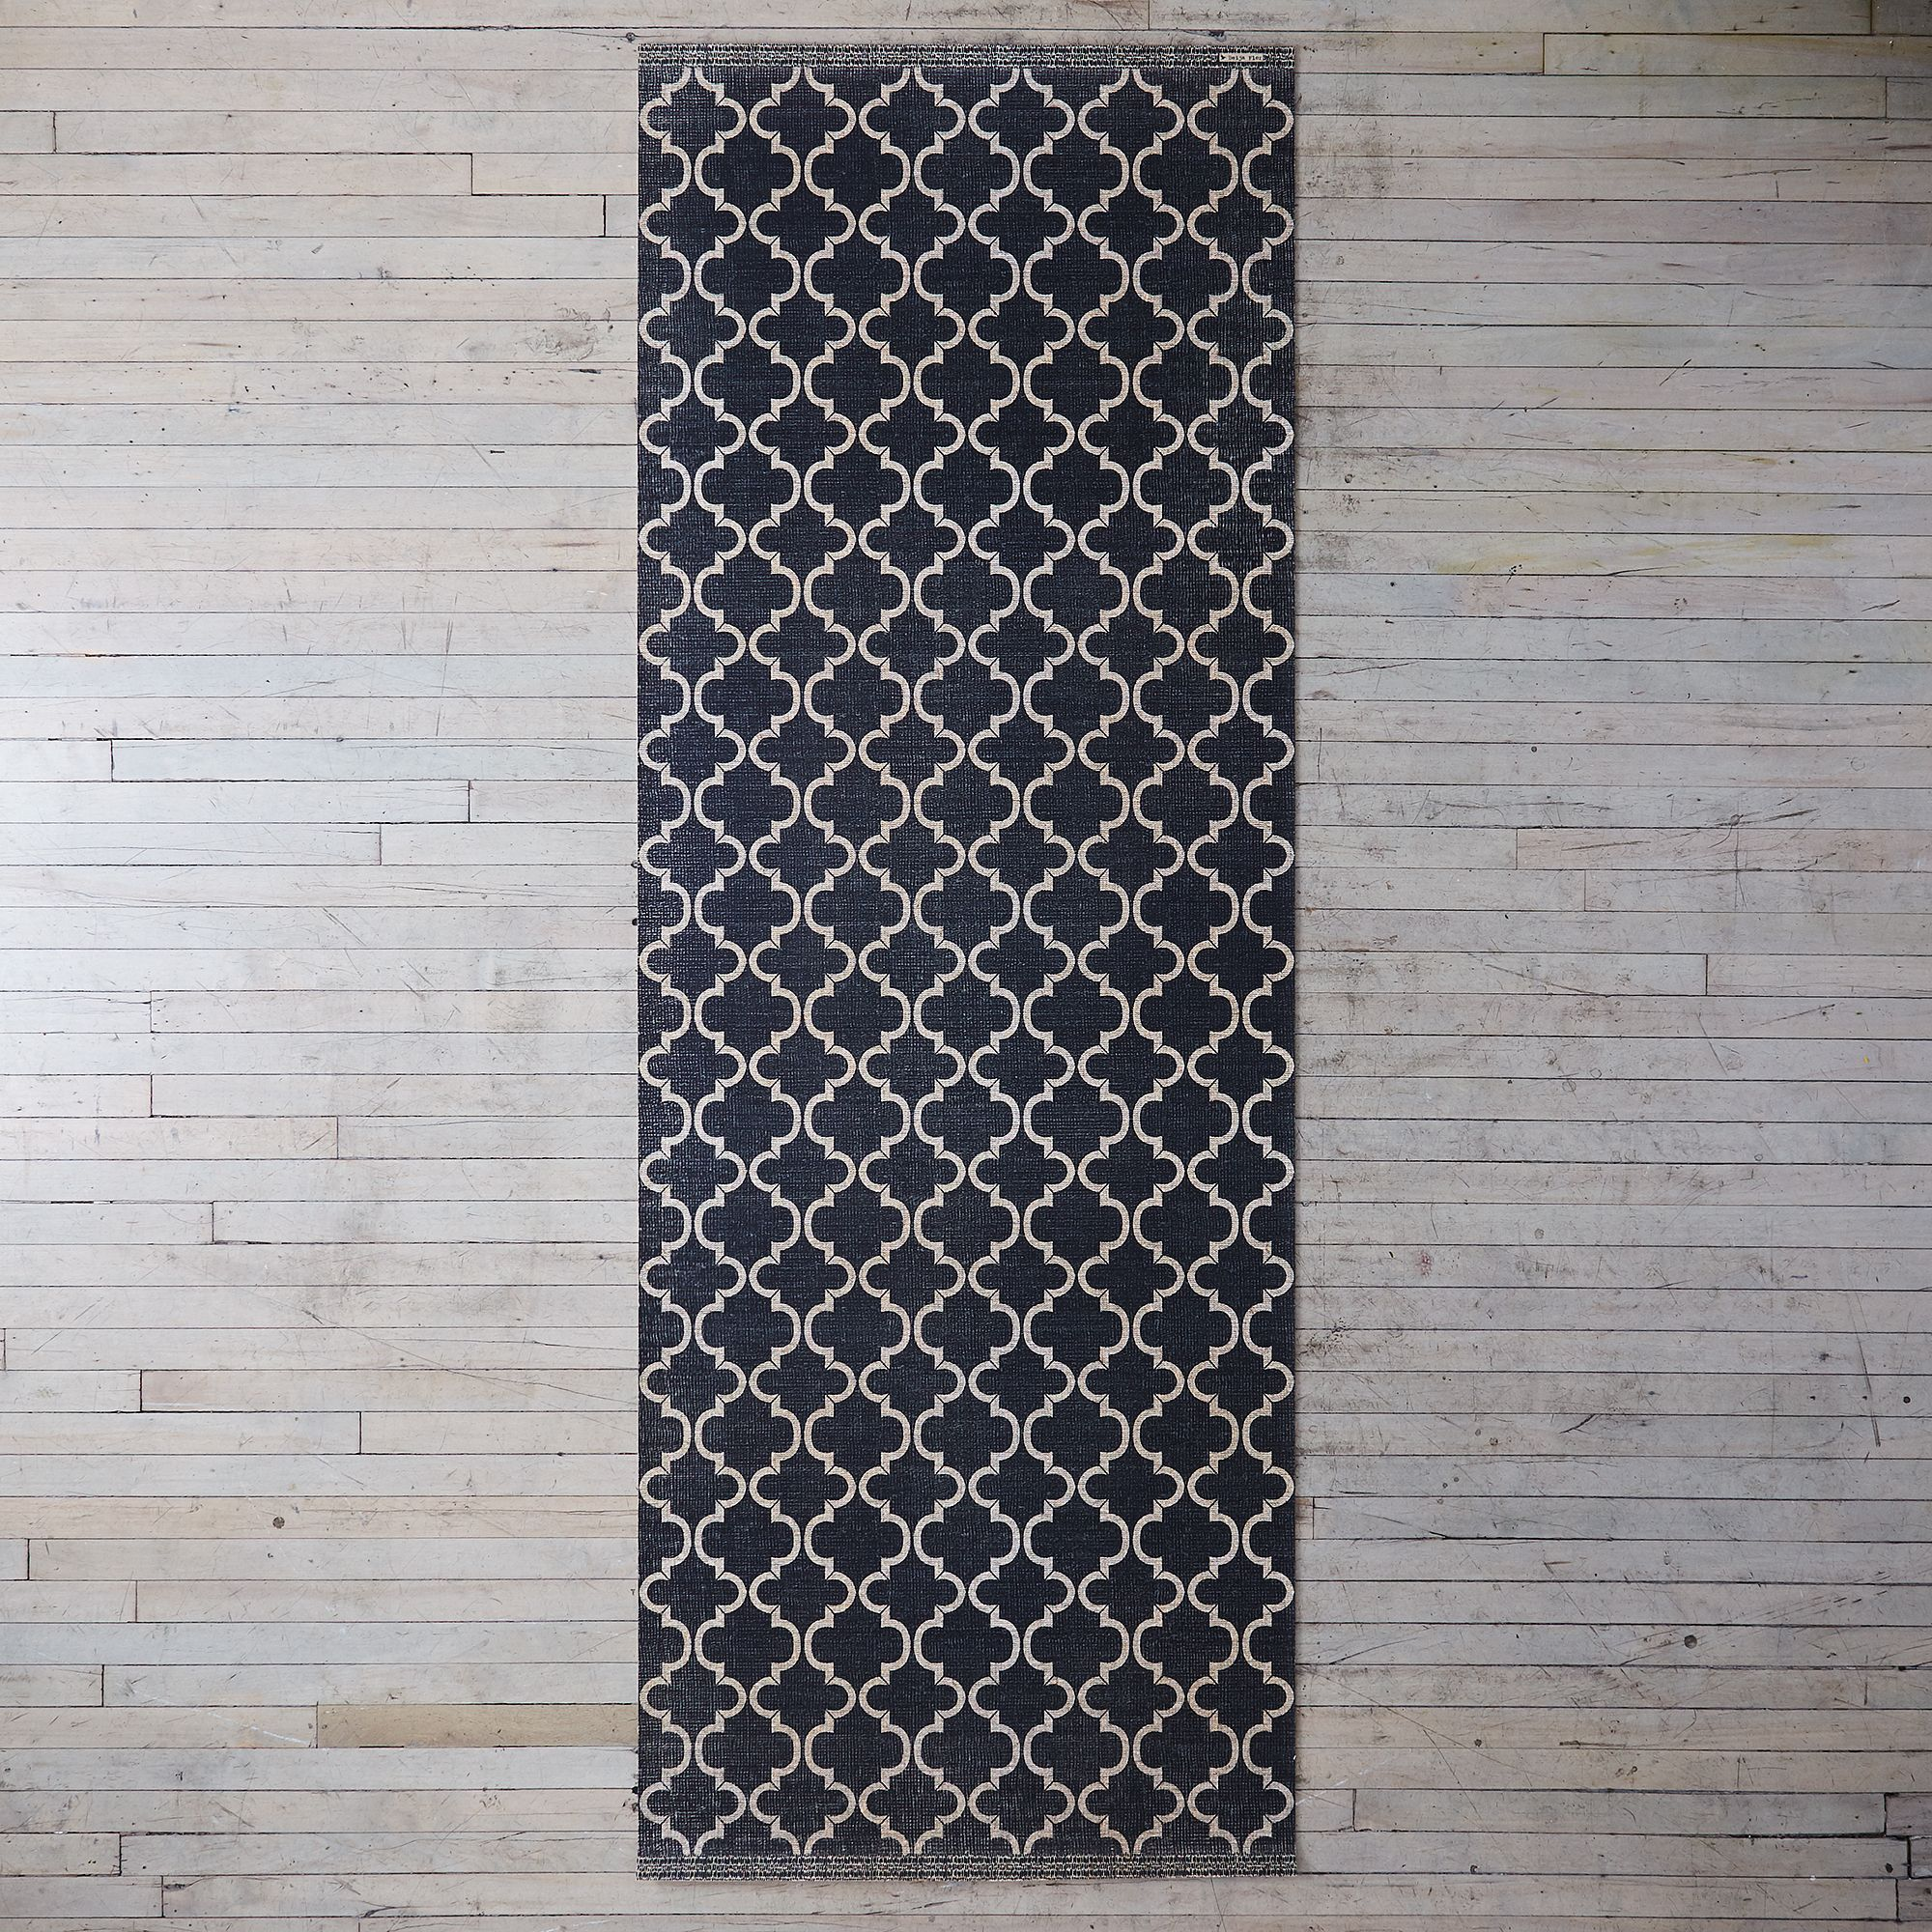 D40813d8 9846 47bf a67d dbe708e4fc01  2017 0628 kiss that frog flatwoven vinyl mat sui suzanna black and brown runner silo rocky luten 012